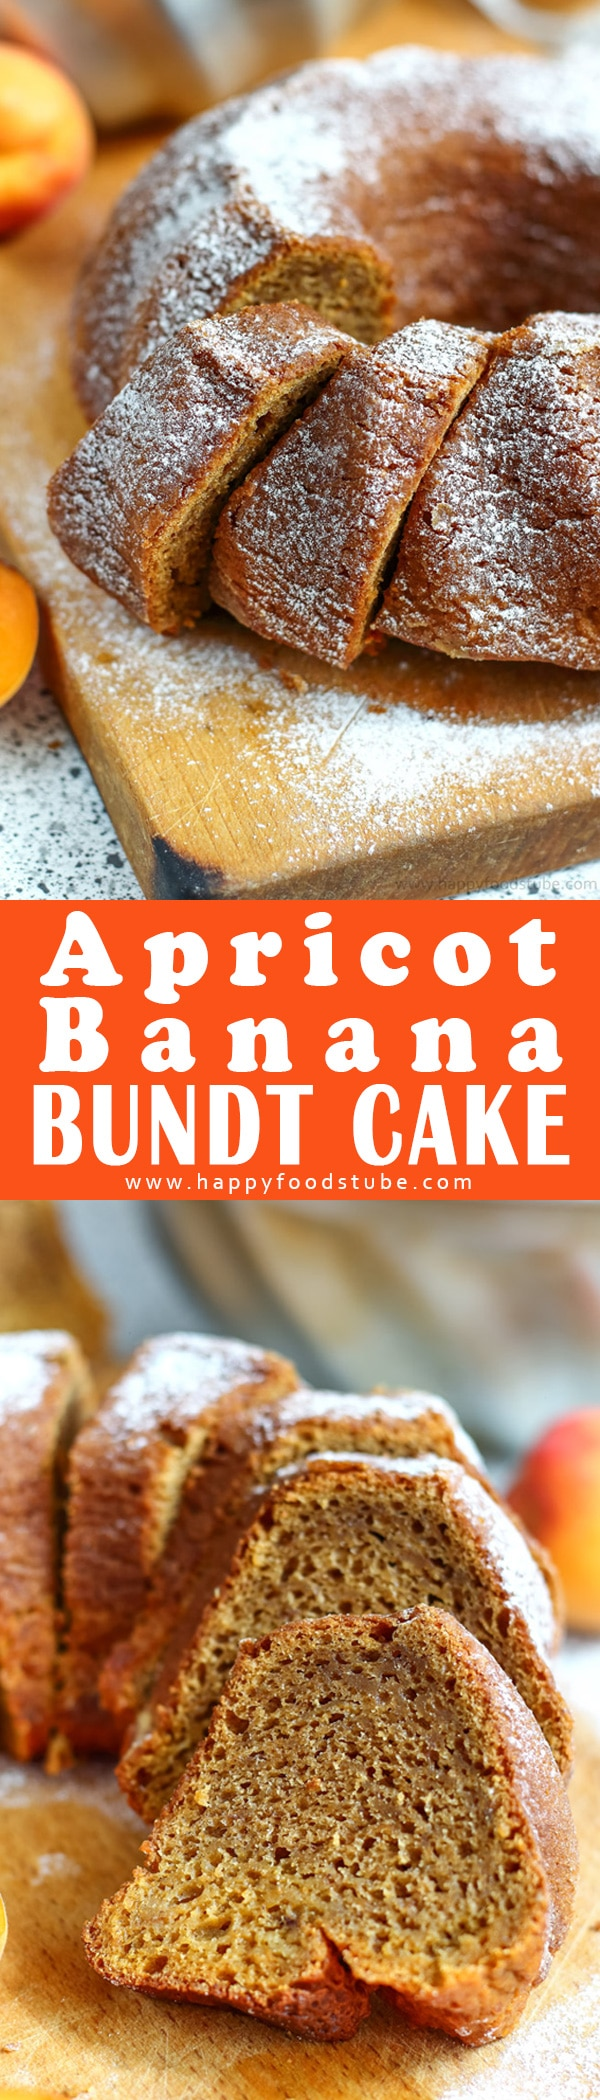 This apricot banana bundt cake is perfect for breakfast, afternoon snack, brunch or coffee break. Apricot puree and banana make it extra moist & add sweetness to it. Easy banana bundt cake from scratch. #apricot #banana #bundt #cake #recipe #baking #dessert